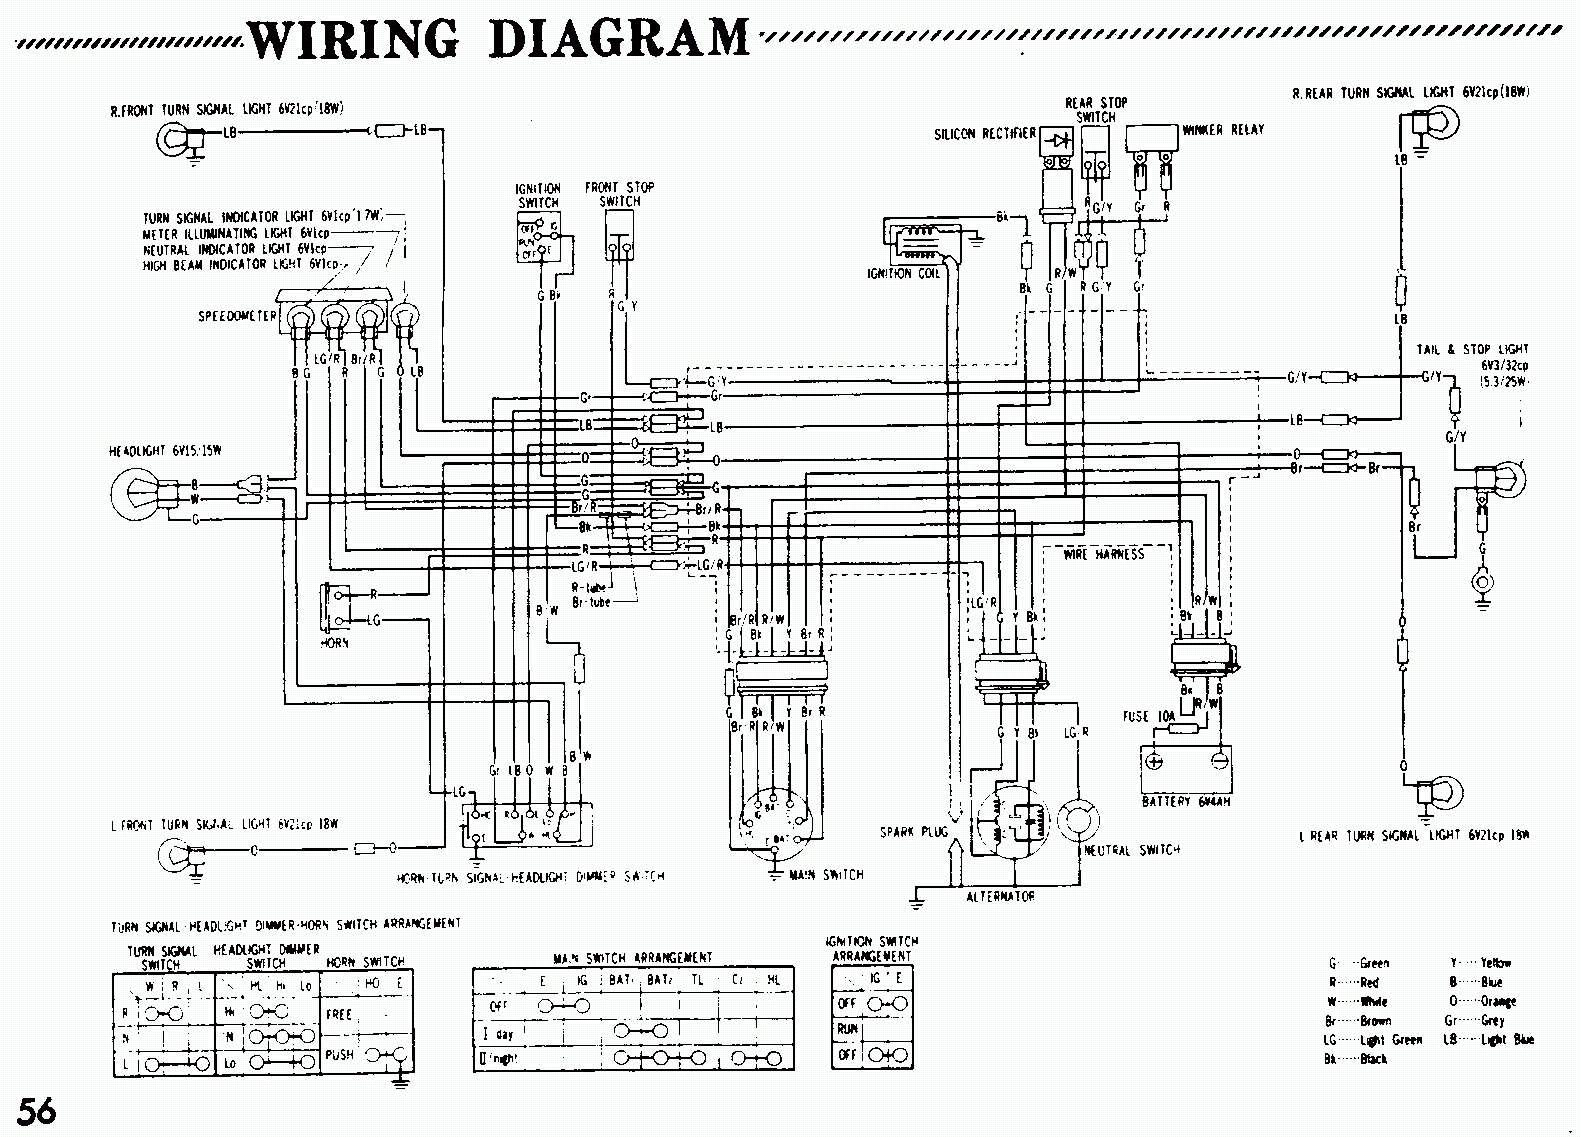 honda ct70 1976 wiring diagram honda xl70 wiring diagram honda cb750 wiring diagram \u2022 free wiring honda xl80s wiring diagram at soozxer.org